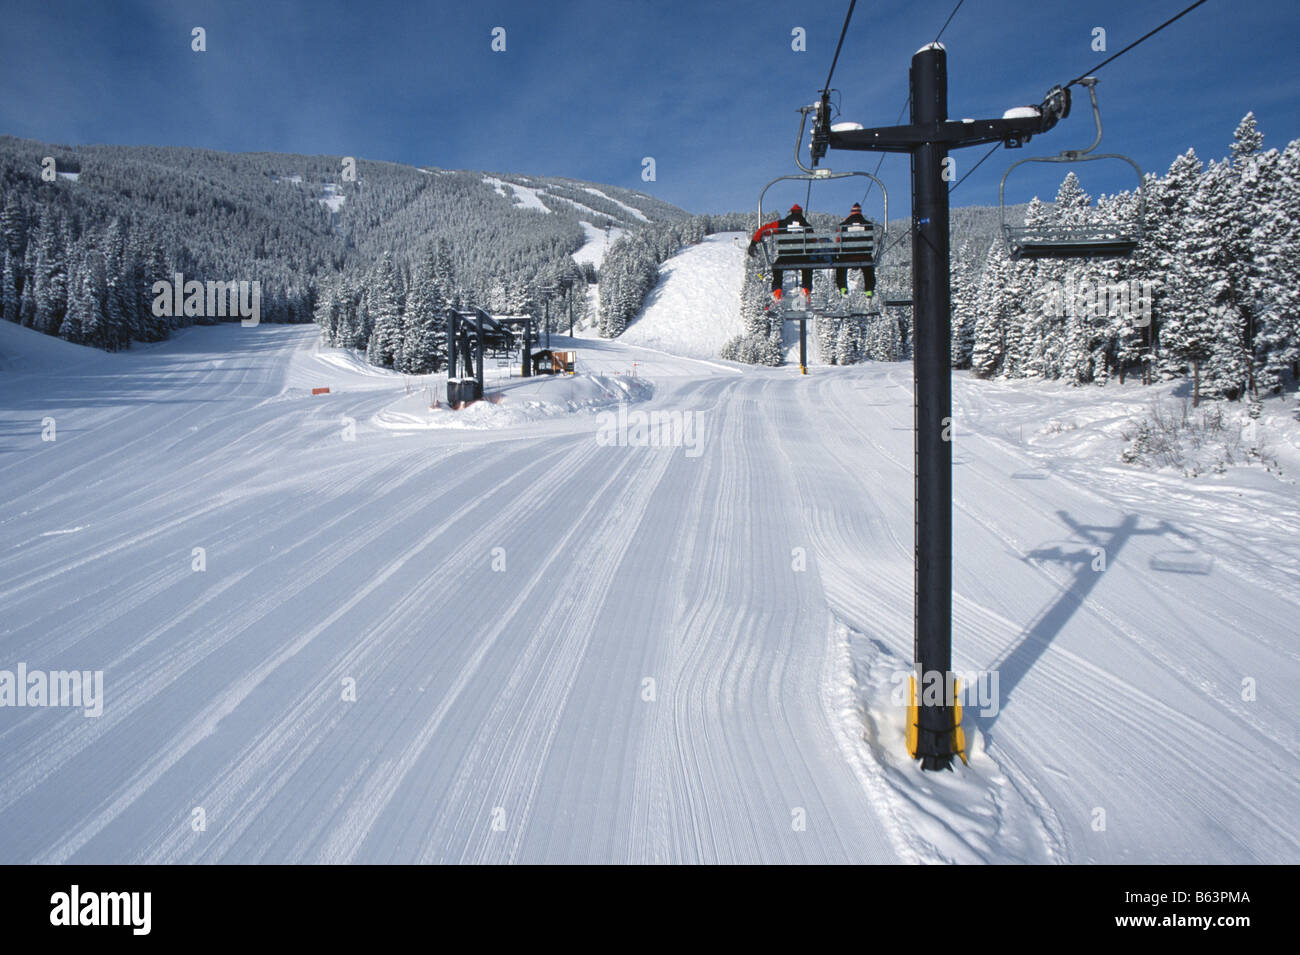 Fresh Groomed Snow From The First Chair In Red Lodge Montana Usa Stock Photo Alamy